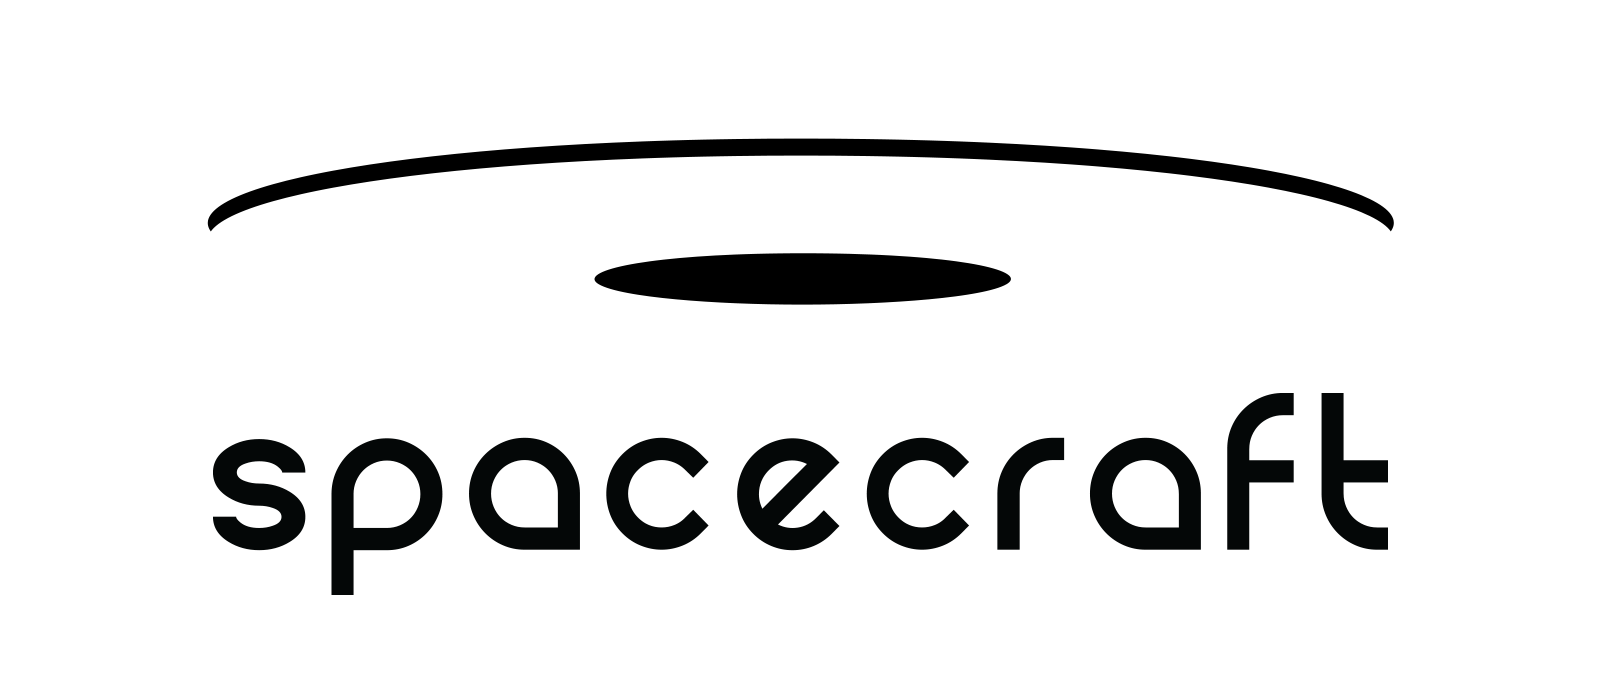 spacecraft-logo-eye